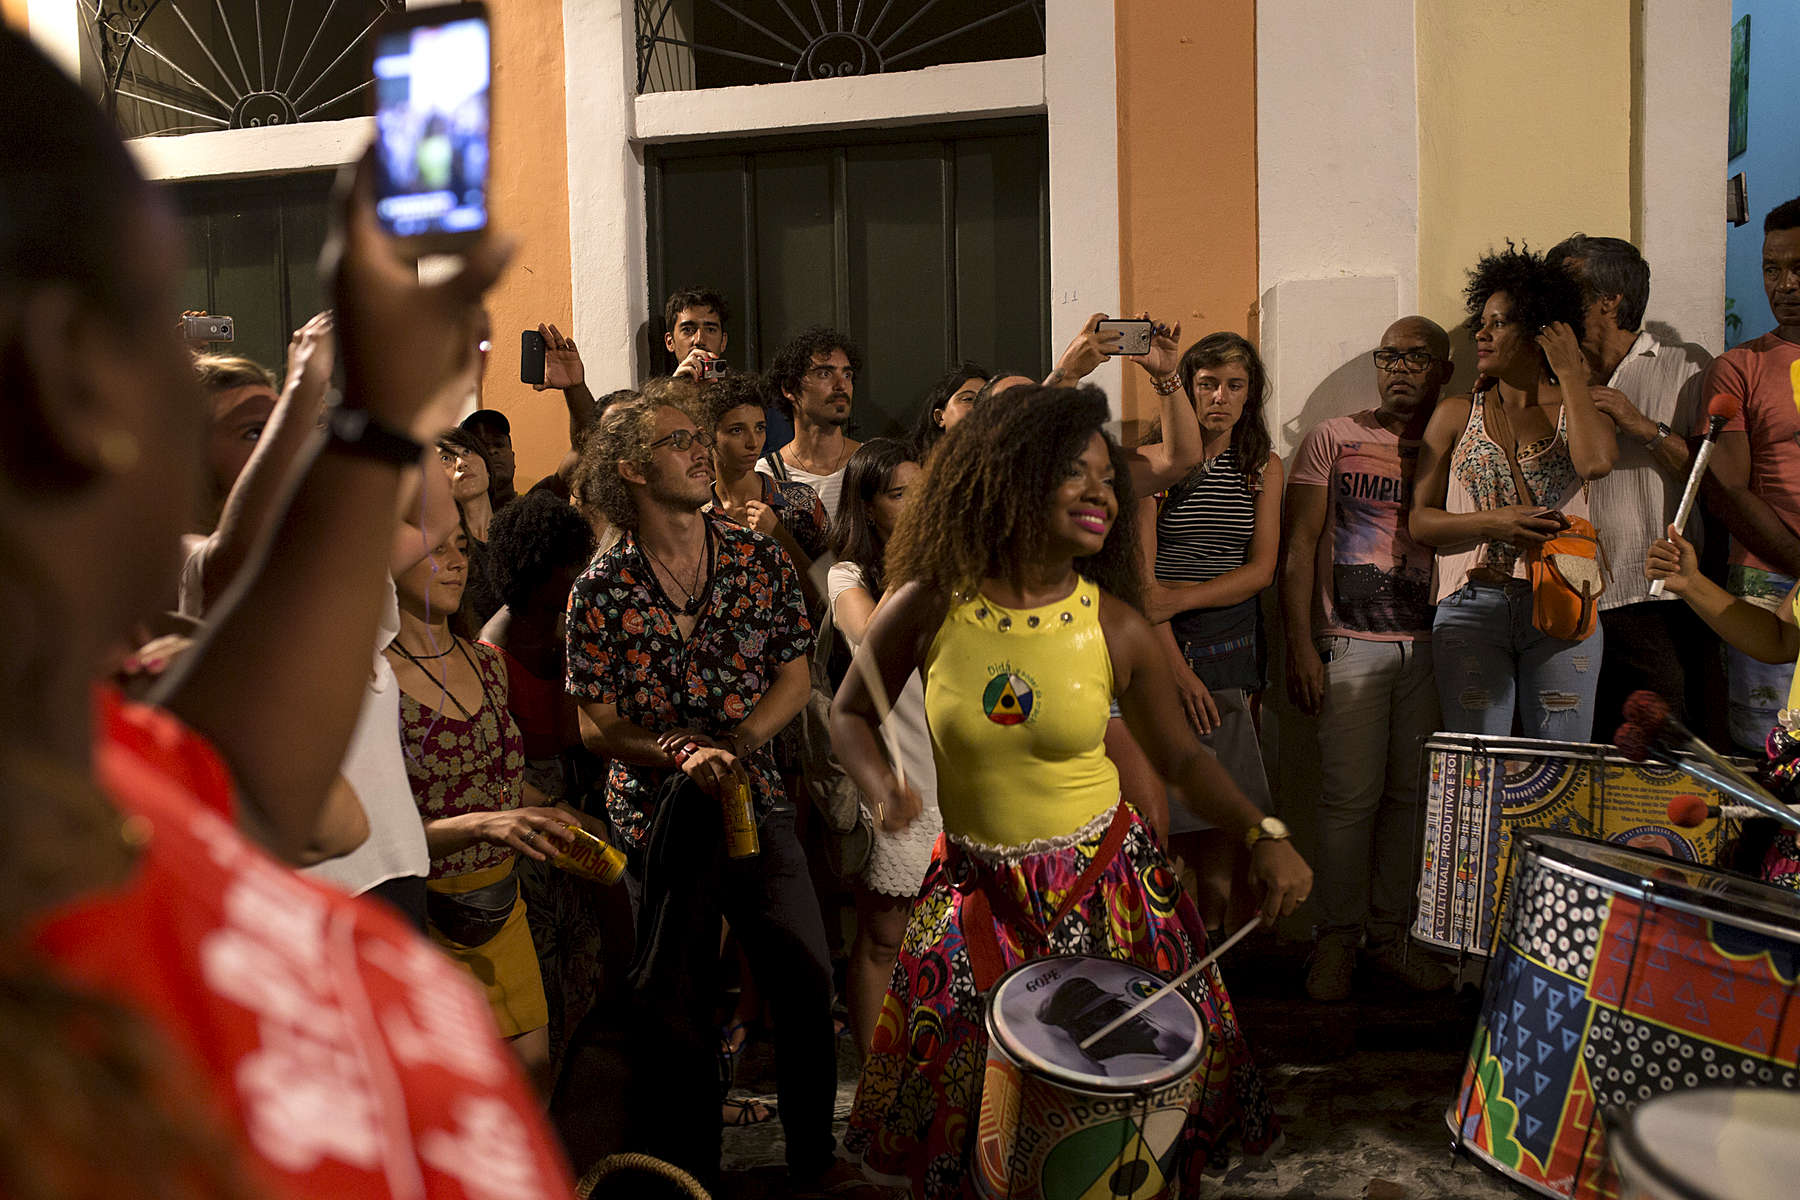 Ivone Cruz leads the Didá band infront of a group of onlookers watching the performance on the street outside Project Didá in Salvador's historic neighborhood, Pelourinho.